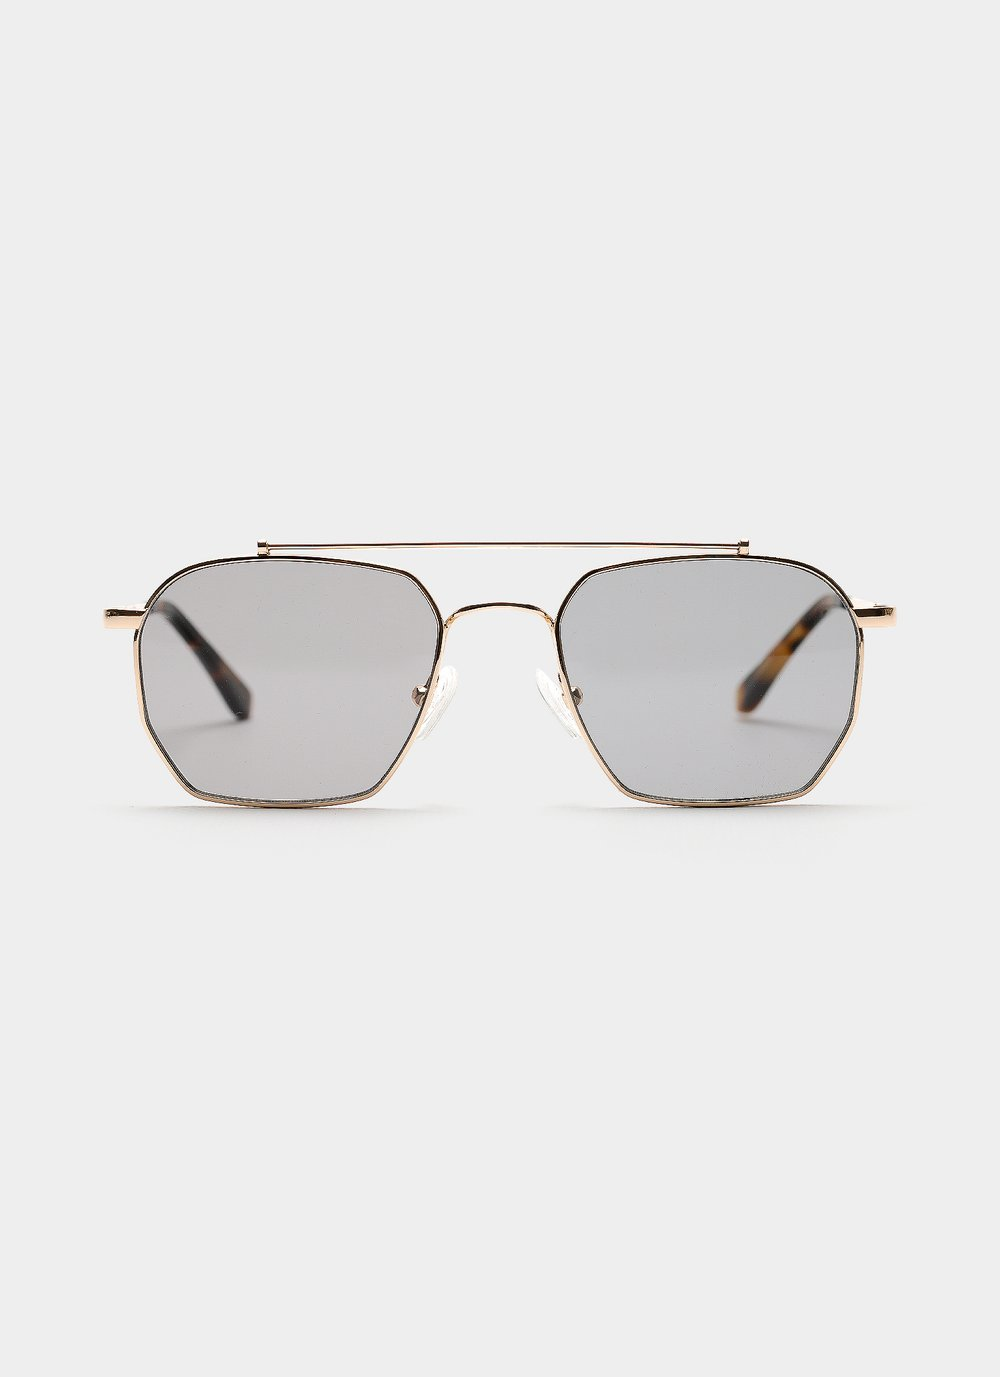 BOWIE - GOLD/GRAPHITE by Vehla, available on vehlaeyewear.com for $180 Alessandra Ambrosio Sunglasses Exact Product